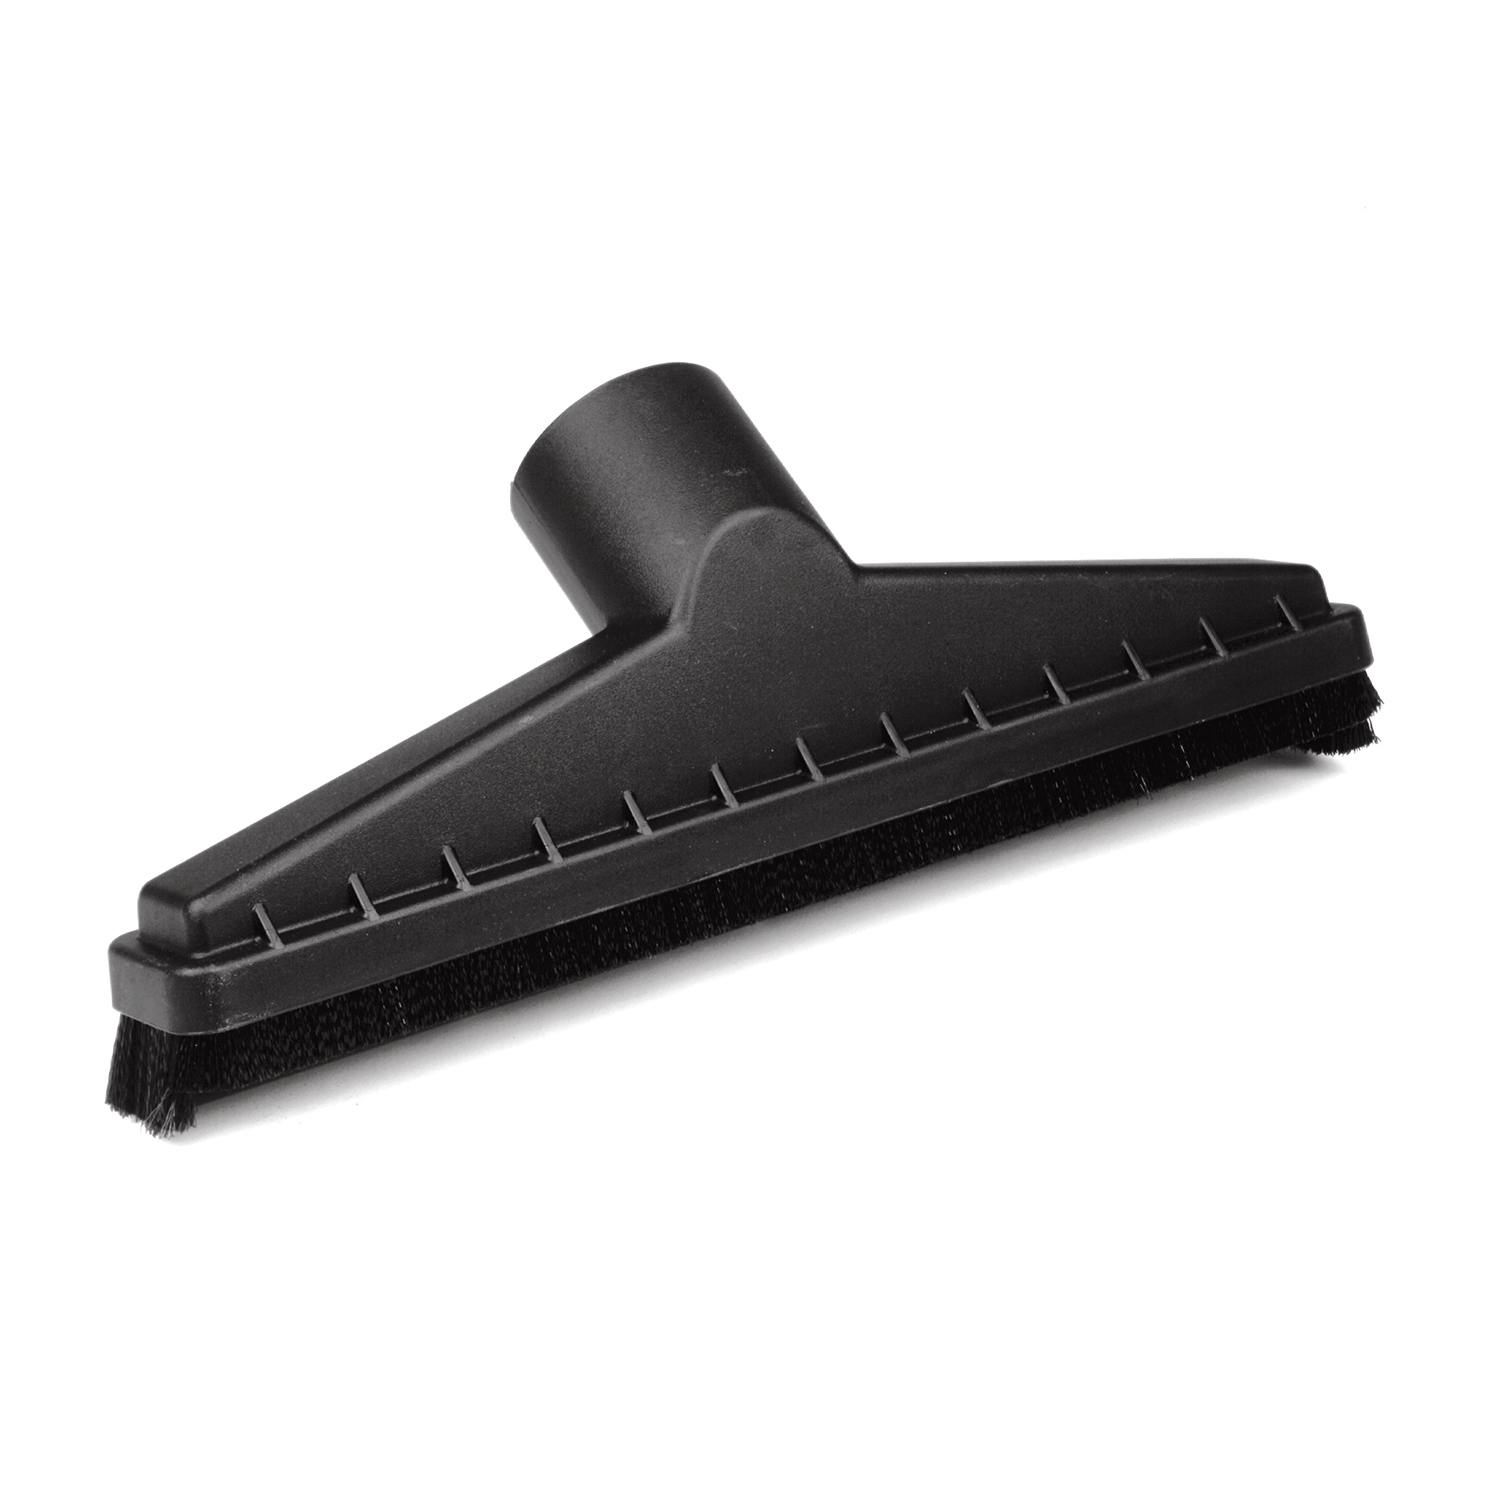 Craftsman  5  L x 15 in. W x 2-1/2 in. Dia. Floor Brush  Black  1 pk